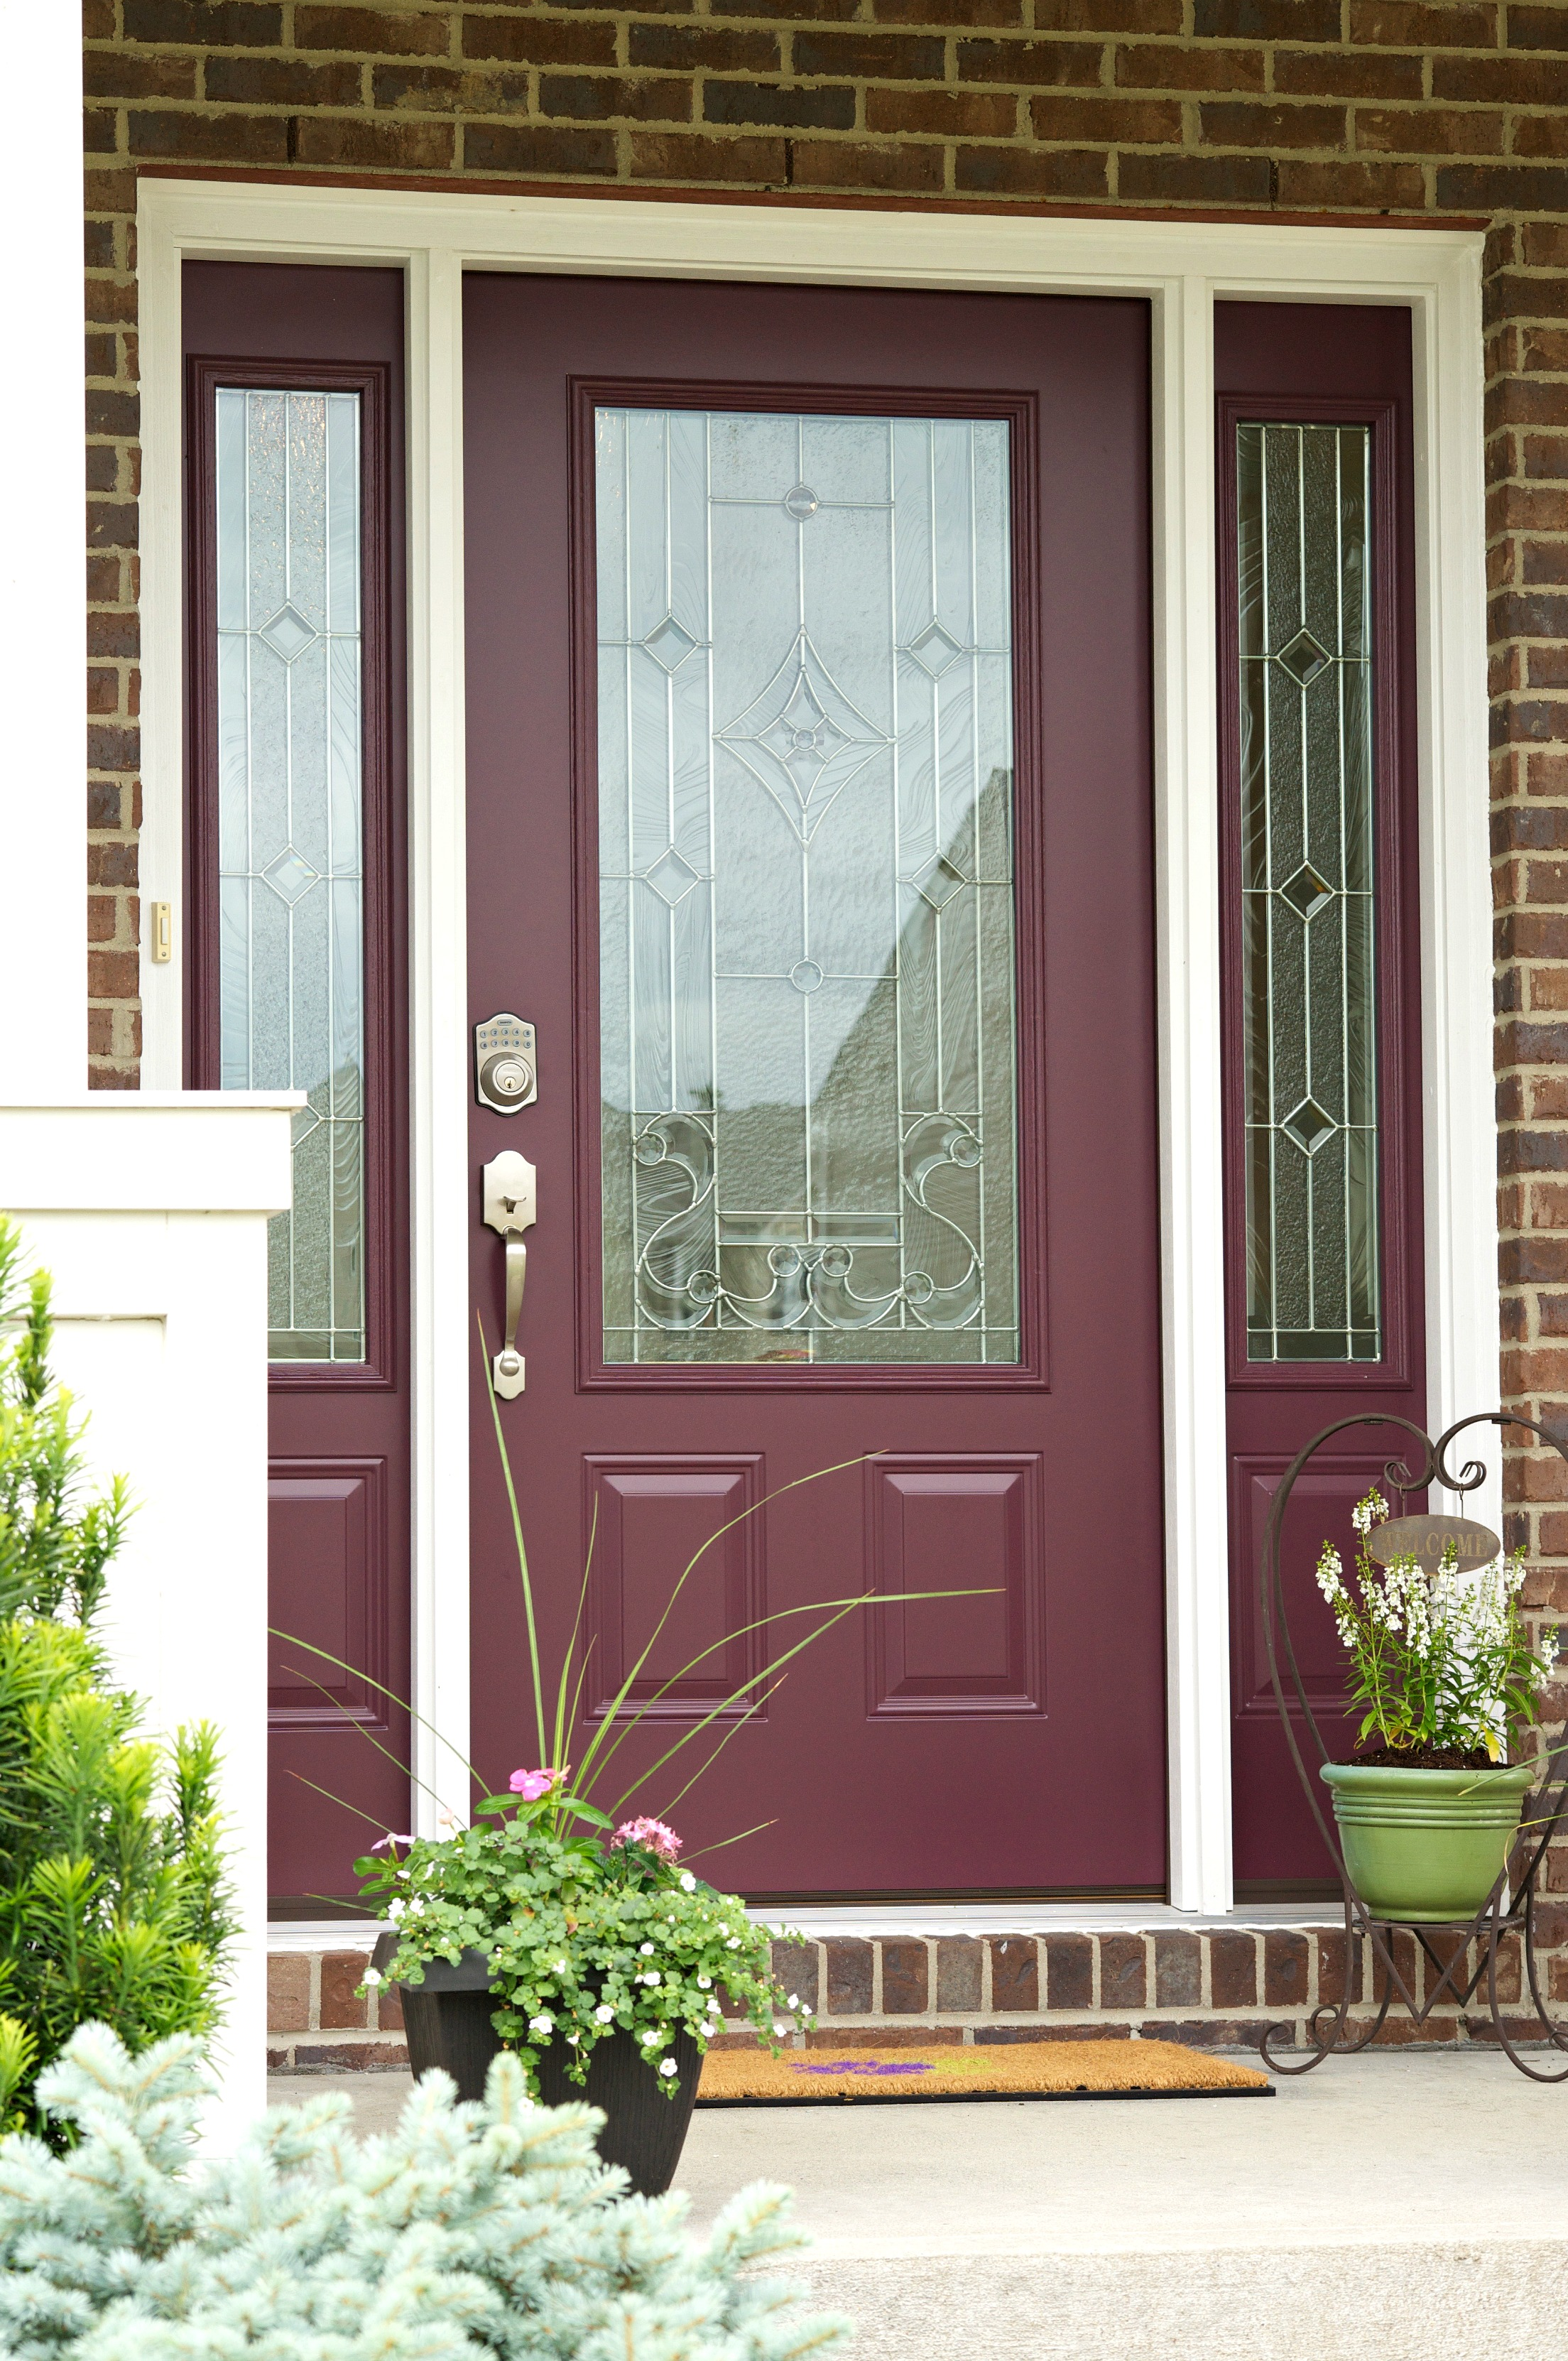 Wow! You've got to see this before and after! This new decorative glass front door adds so much style and curb appeal to this home!